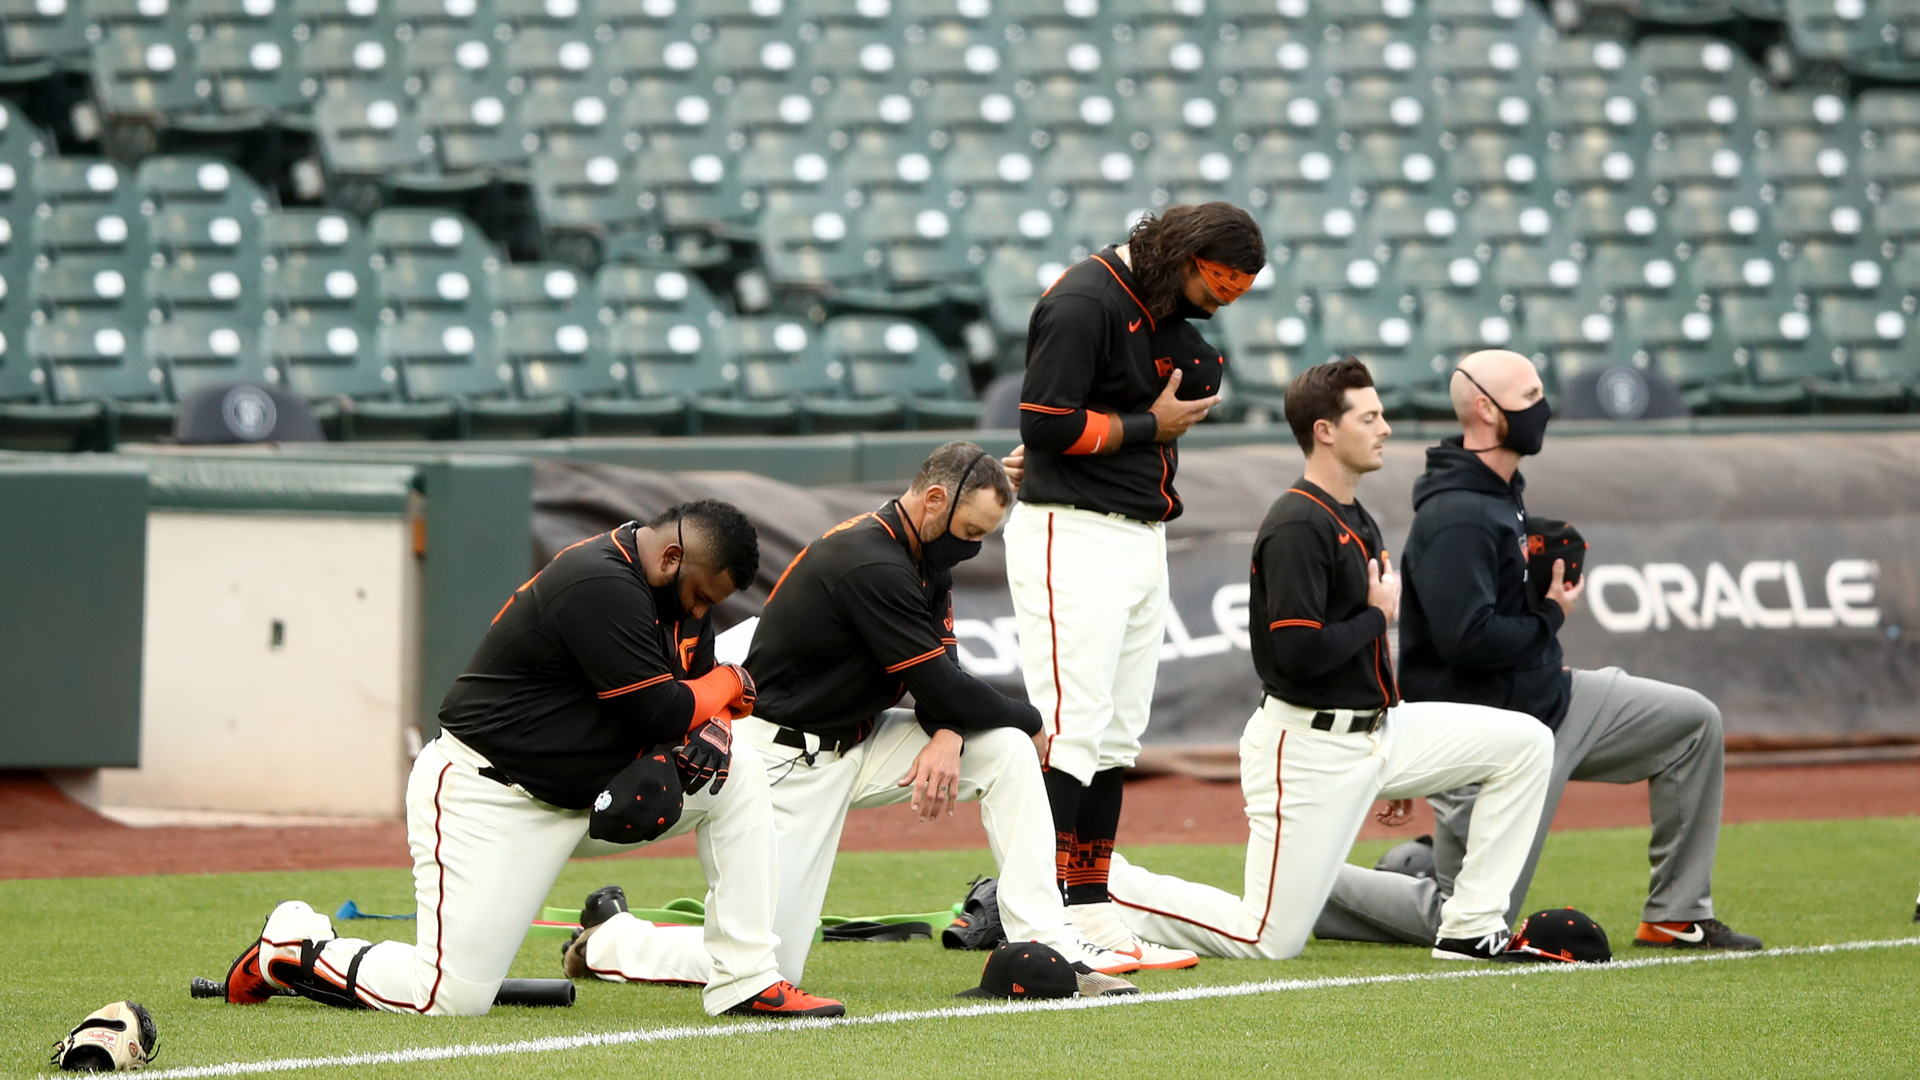 MLB players explain sudden choice to kneel for anthem: 'Simply put, things need to change'